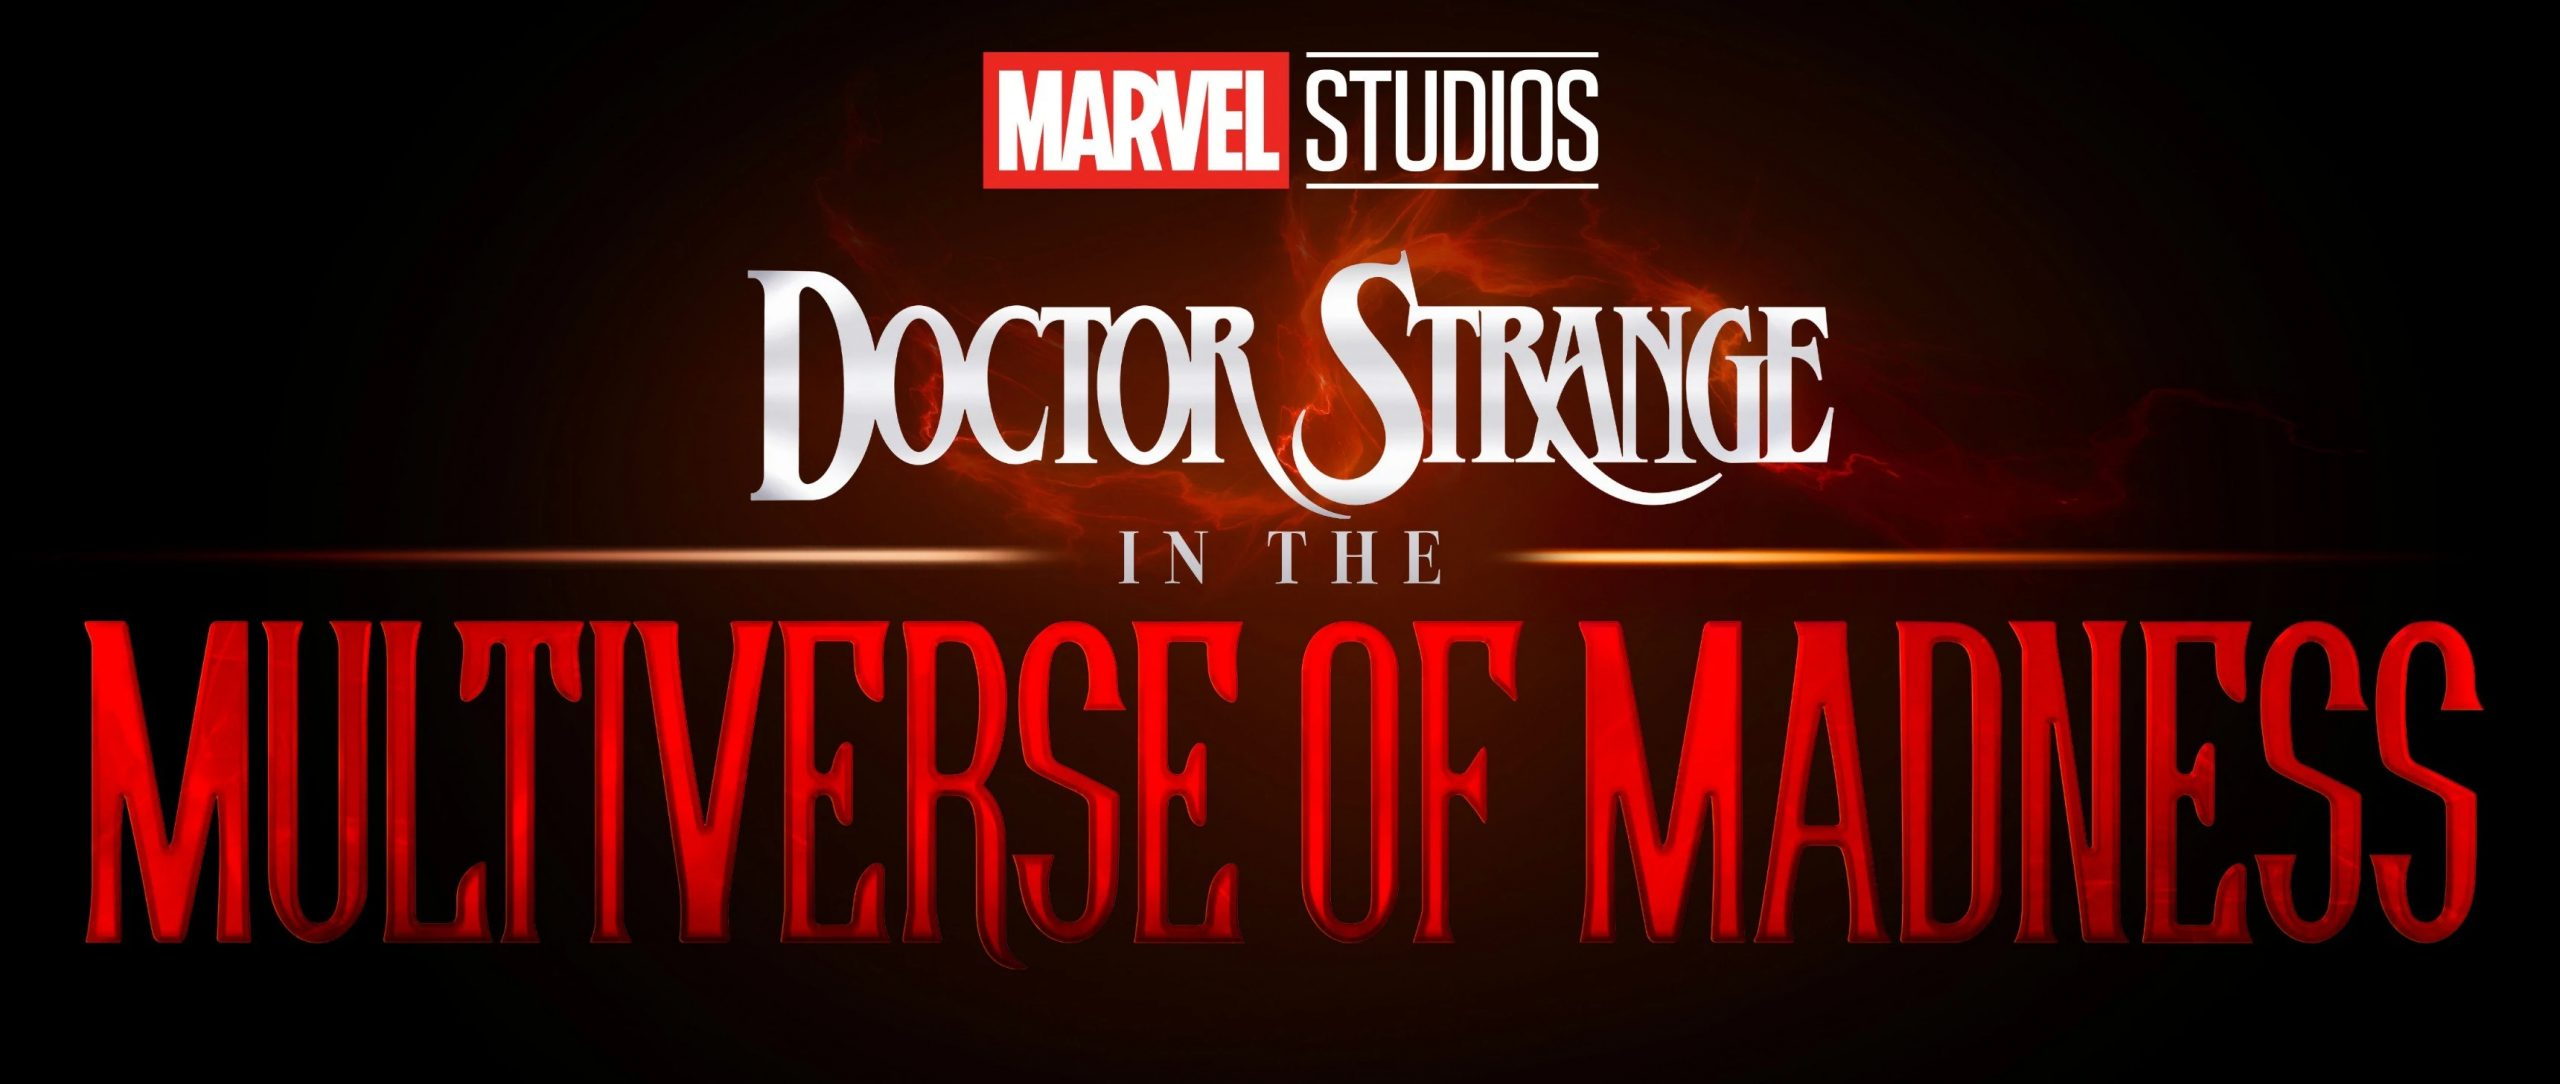 Sam Raimi confirmed as director for Doctor Strange sequel